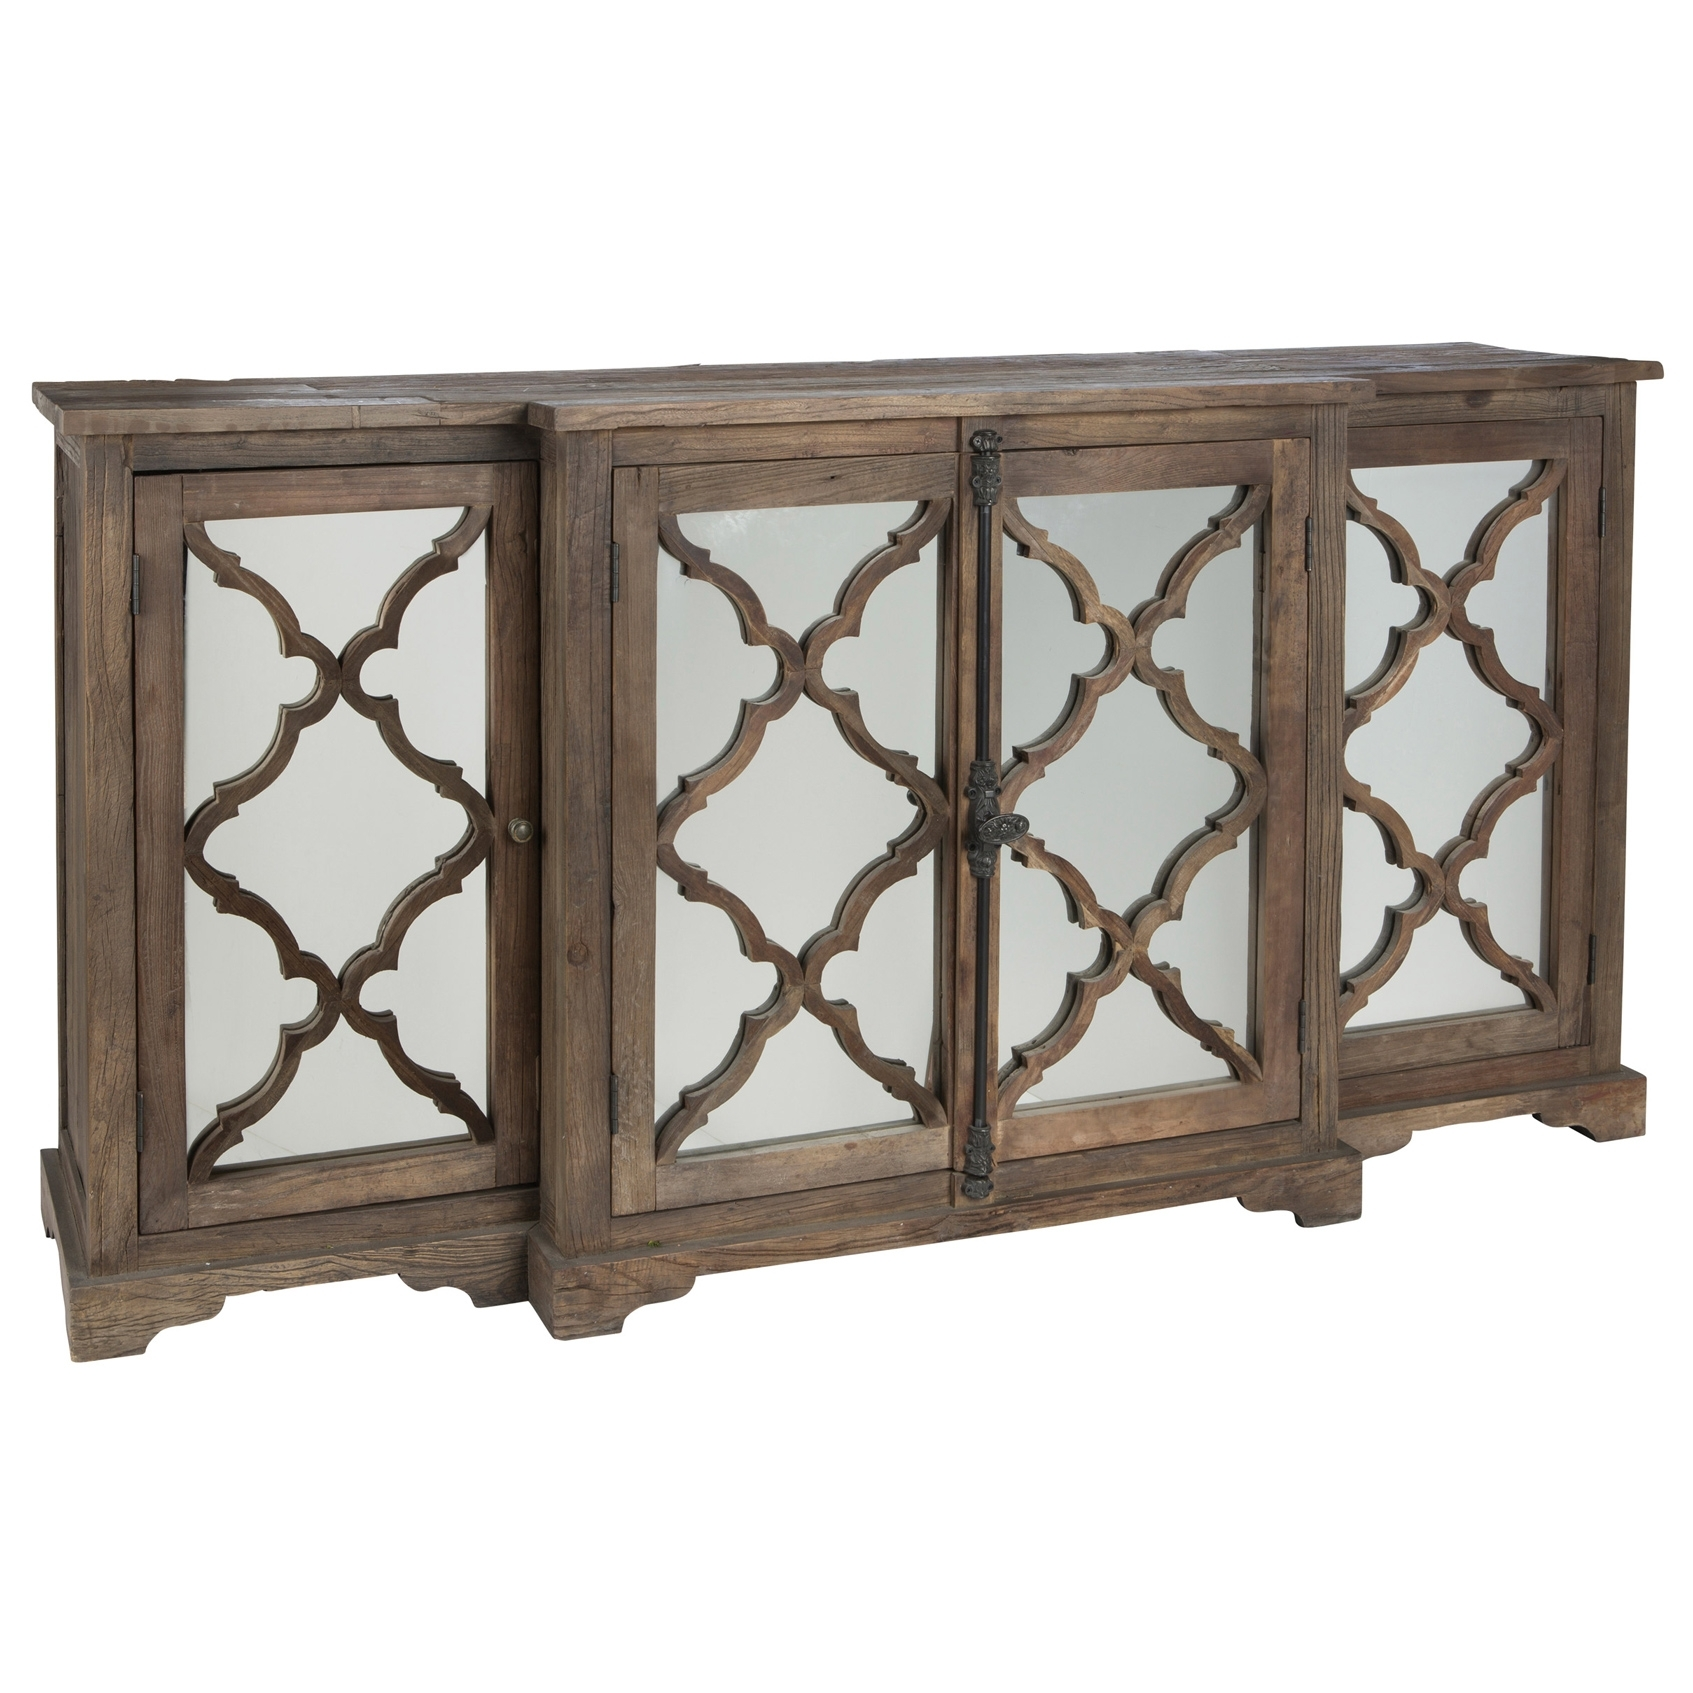 Buffets & Sideboards | Kathy Kuo Home Throughout Iron Sideboards (View 7 of 30)